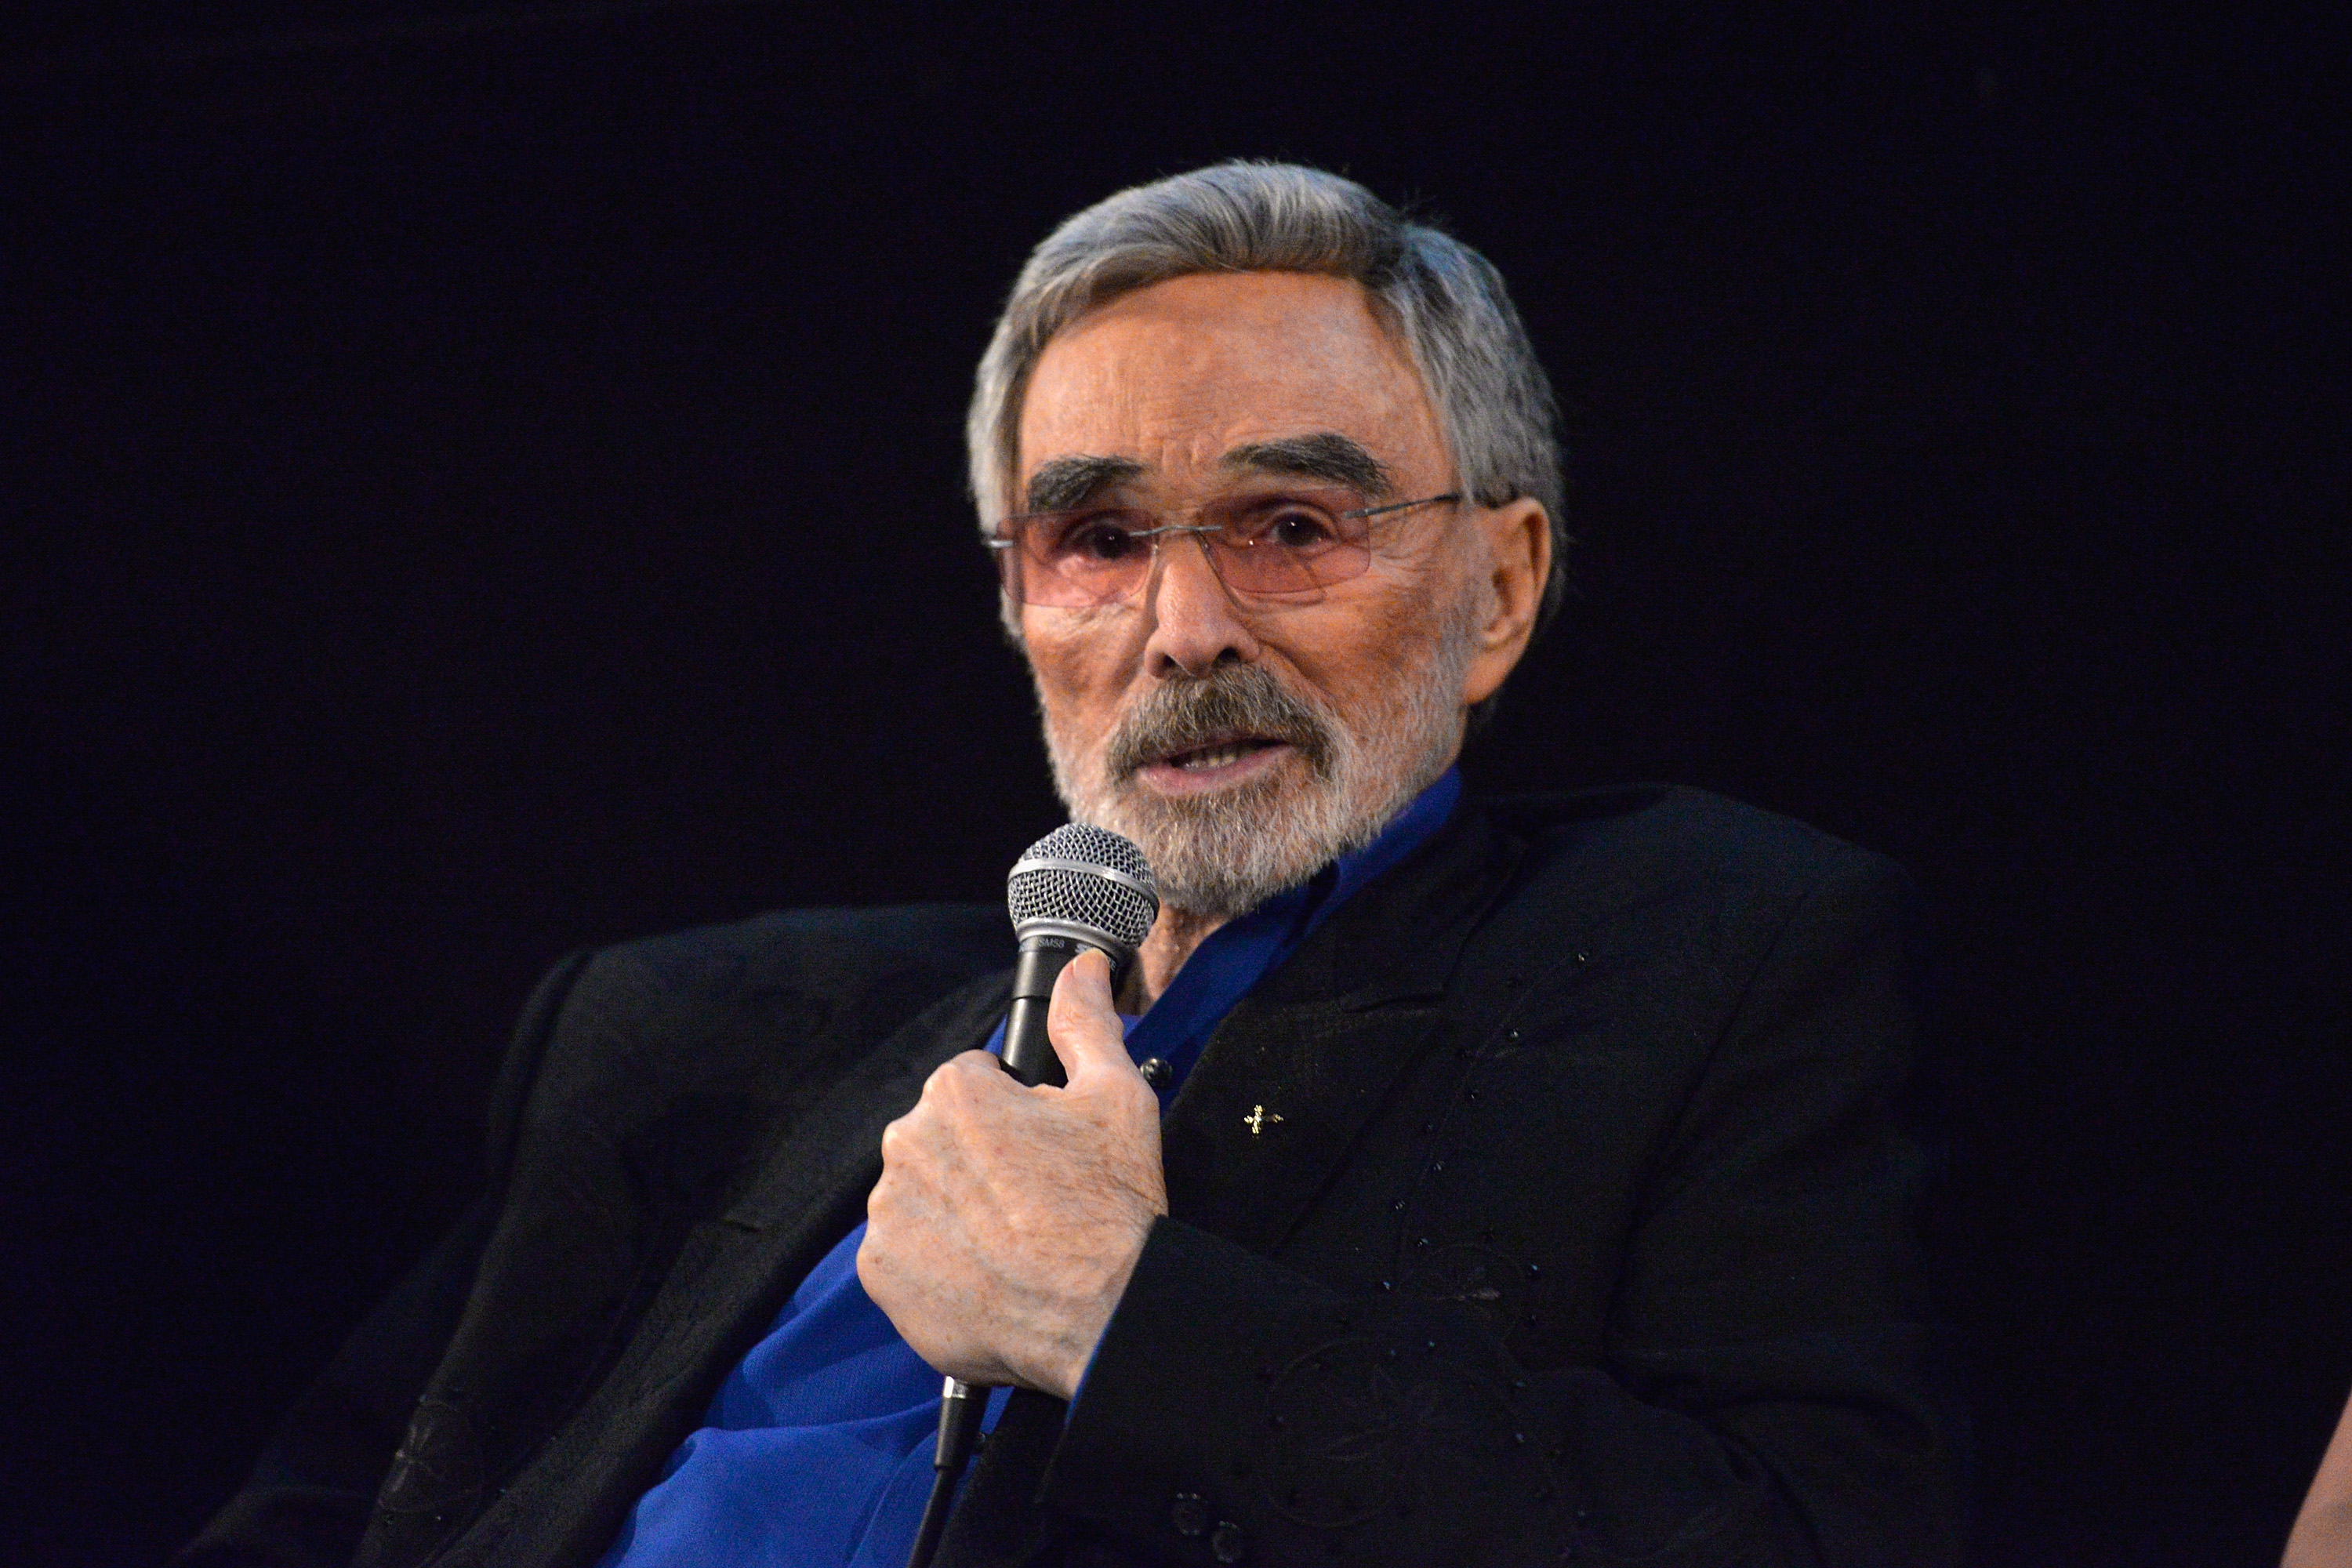 Burt Reynolds speaks during a Q&A session at the Los Angeles premiere of 'The Last Movie Star' at the Egyptian Theatre on March 22, 2018 in Hollywood,